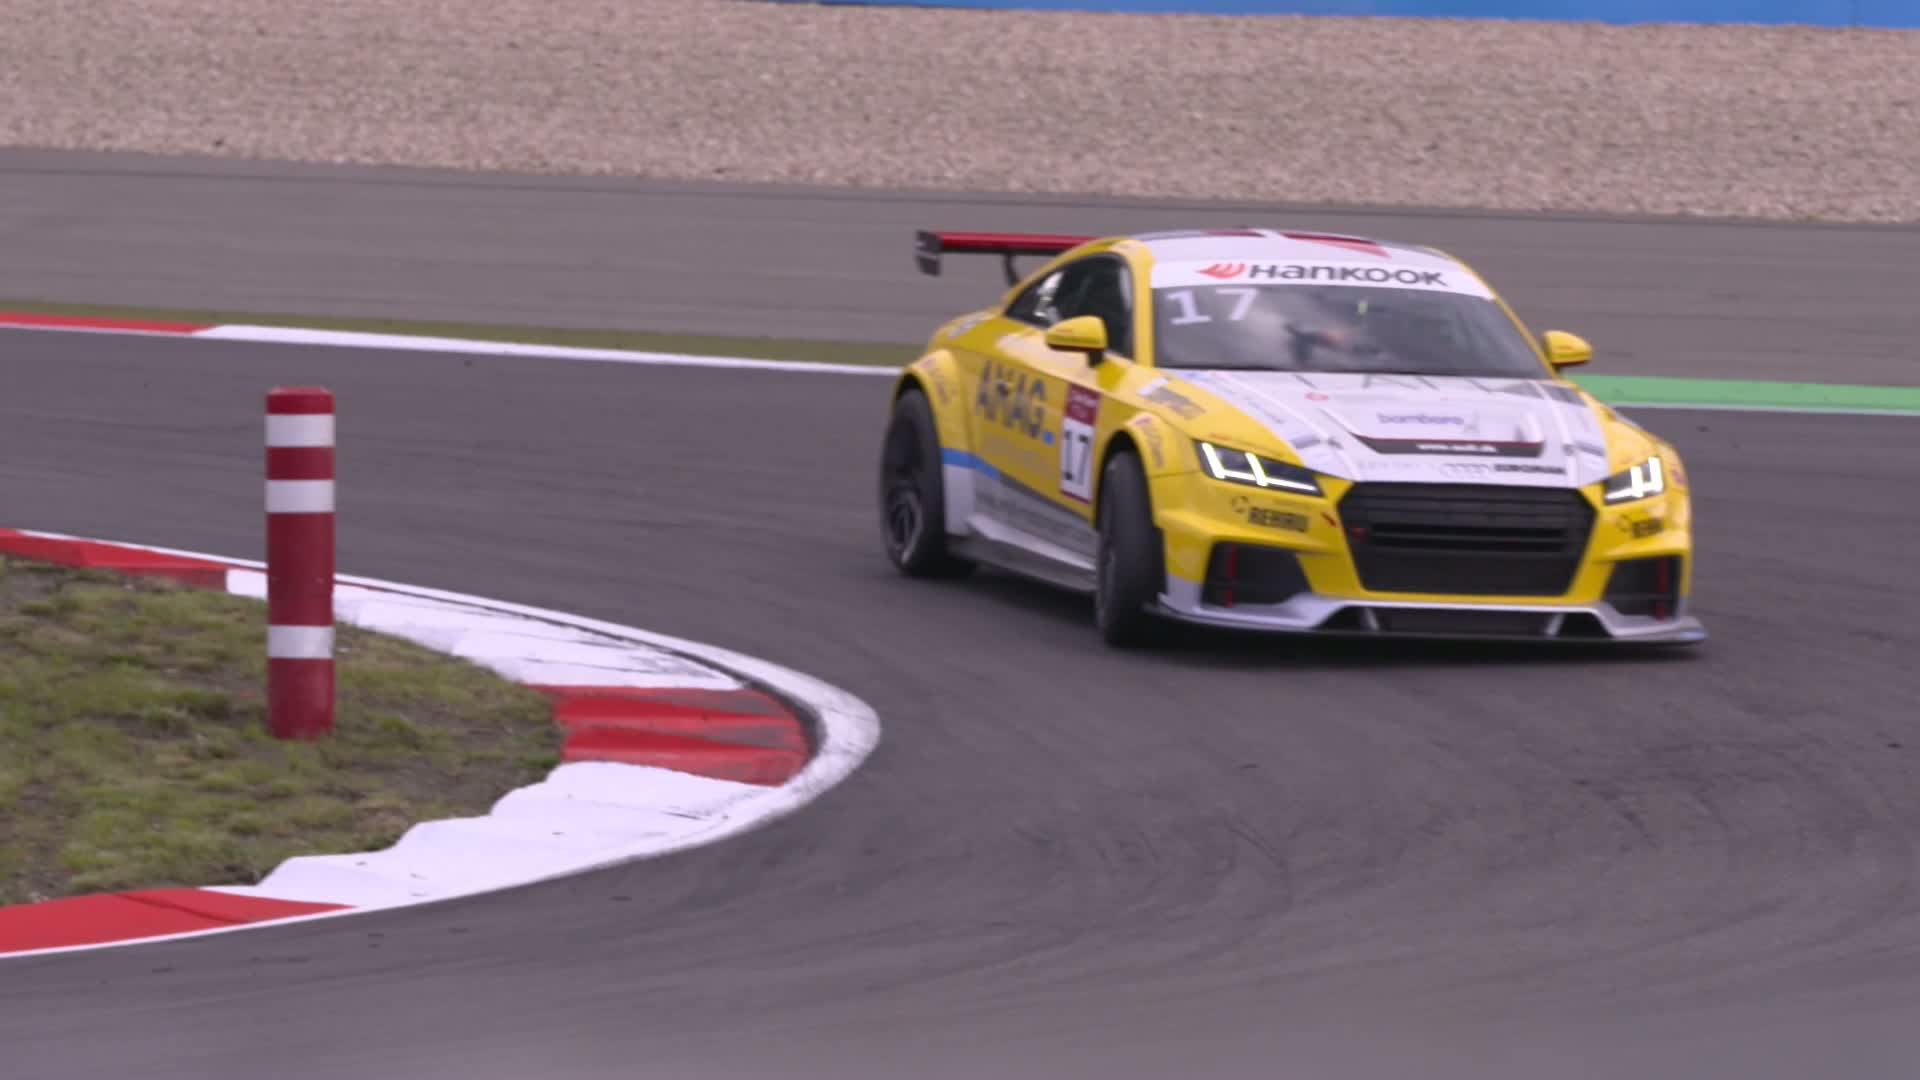 60 Seconds of Audi Sport 82/2015 - TT Cup Nürburgring, Vorschau